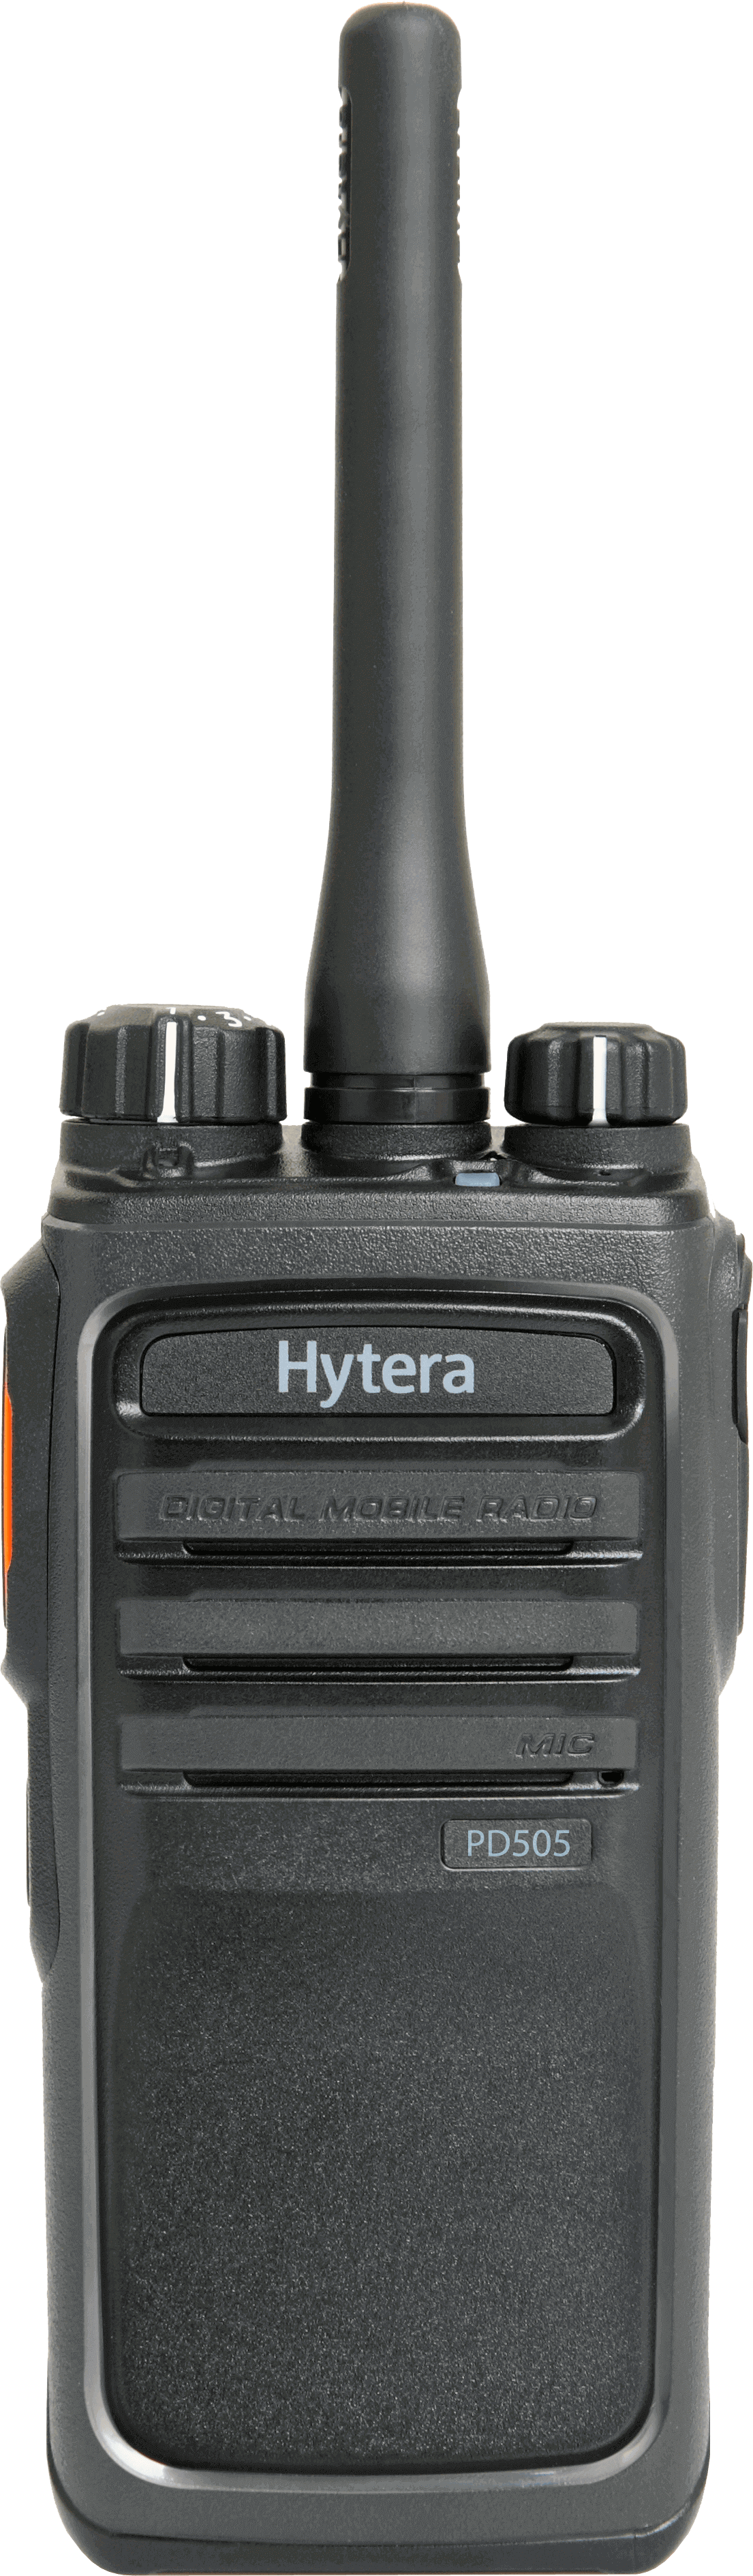 Hytera PD505 featured image